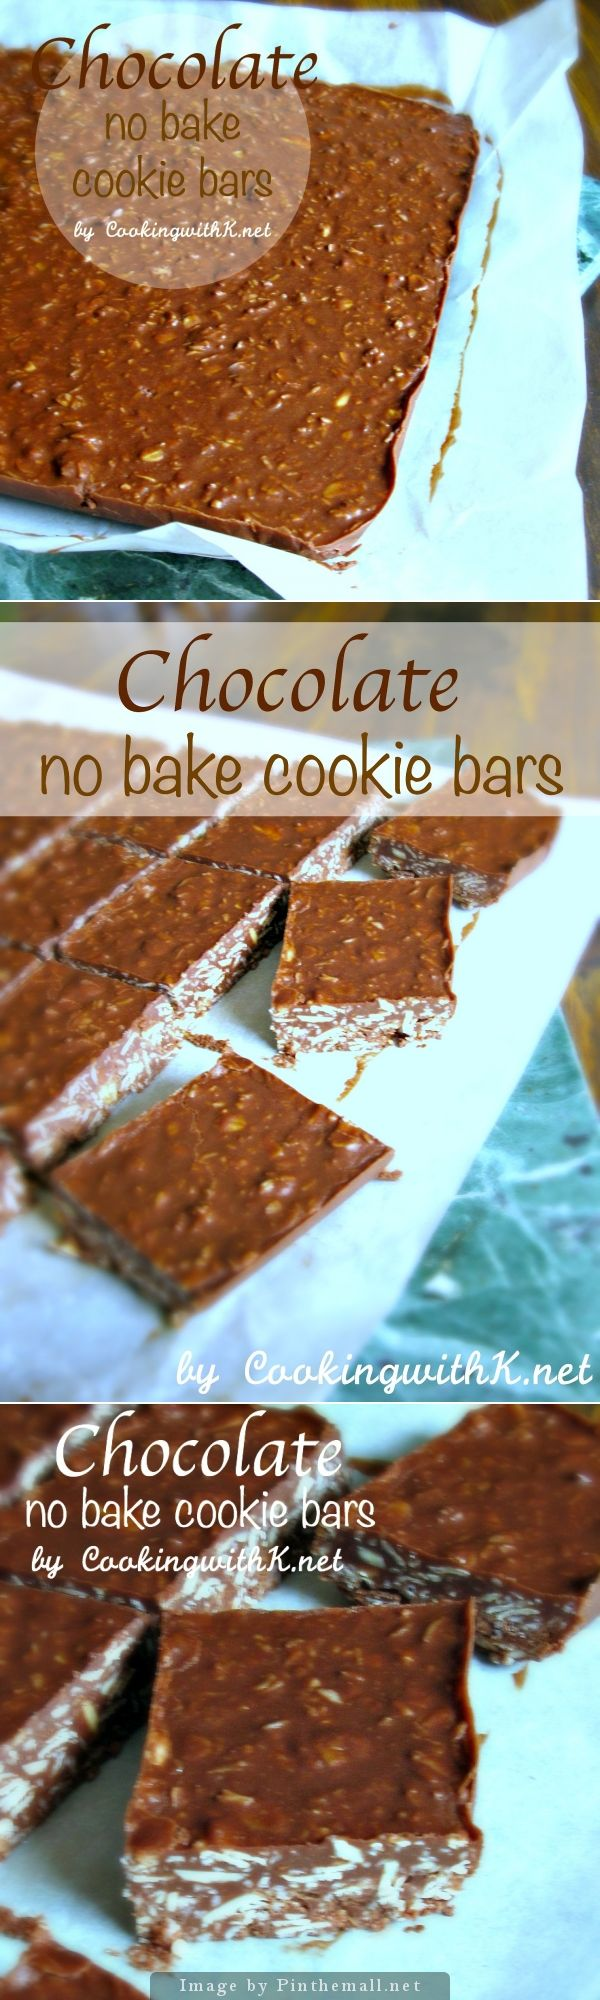 Chocolate No-Bake Cookies Bars | The healthy no-bake cookie bar version made with coconut oil! | CookingwithK.net - created via http://pinthemall.net